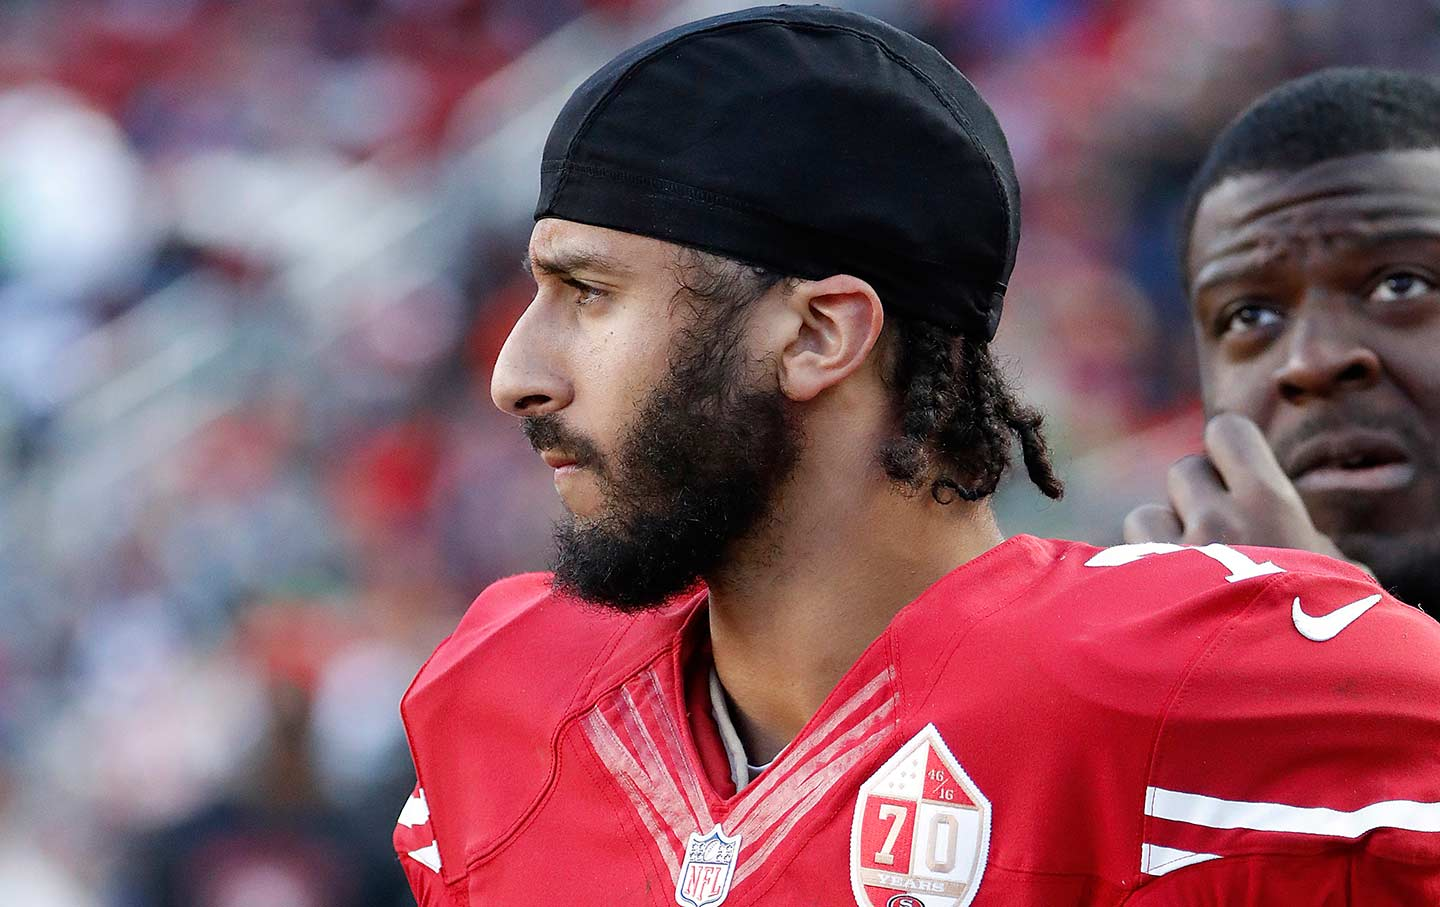 Colin Kaepernick: Colin Kaepernick Shouldn't Have To Beg To Play In The NFL